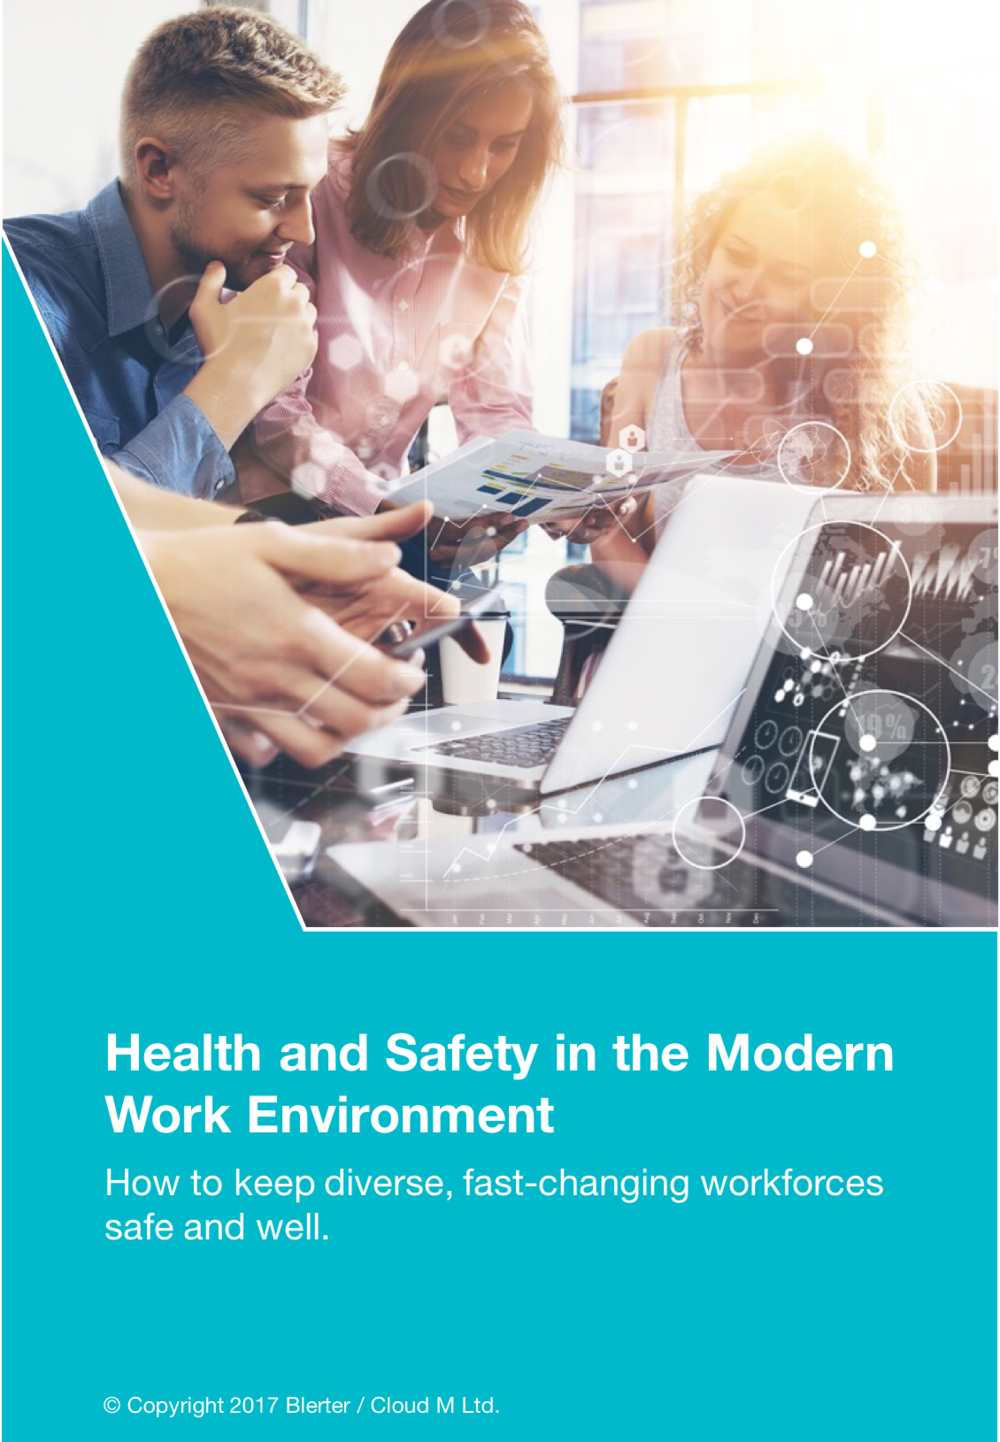 H&S in the modern Work Environment - title image.png